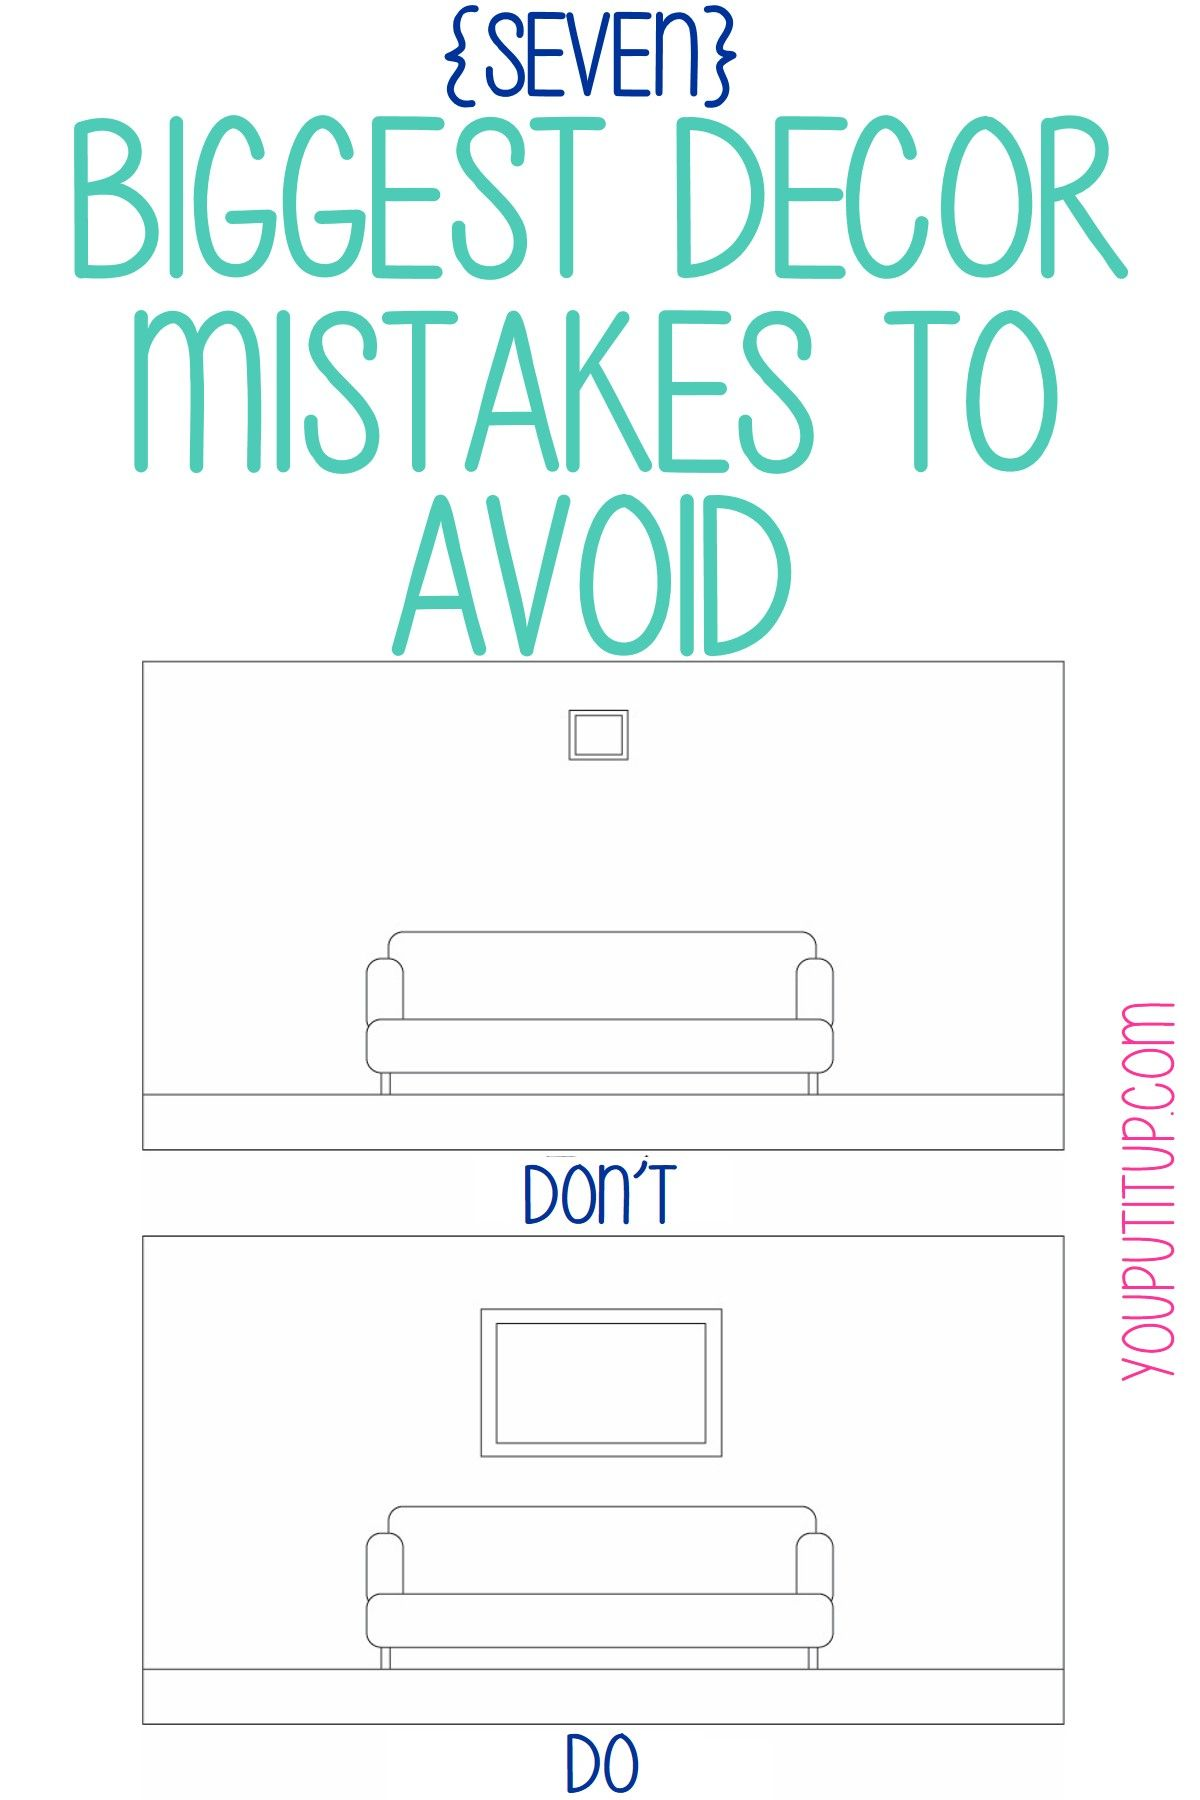 7 Design Mistakes To Avoid In Your Hall: 7 Biggest Decor Mistakes To Avoid #ideas #decor